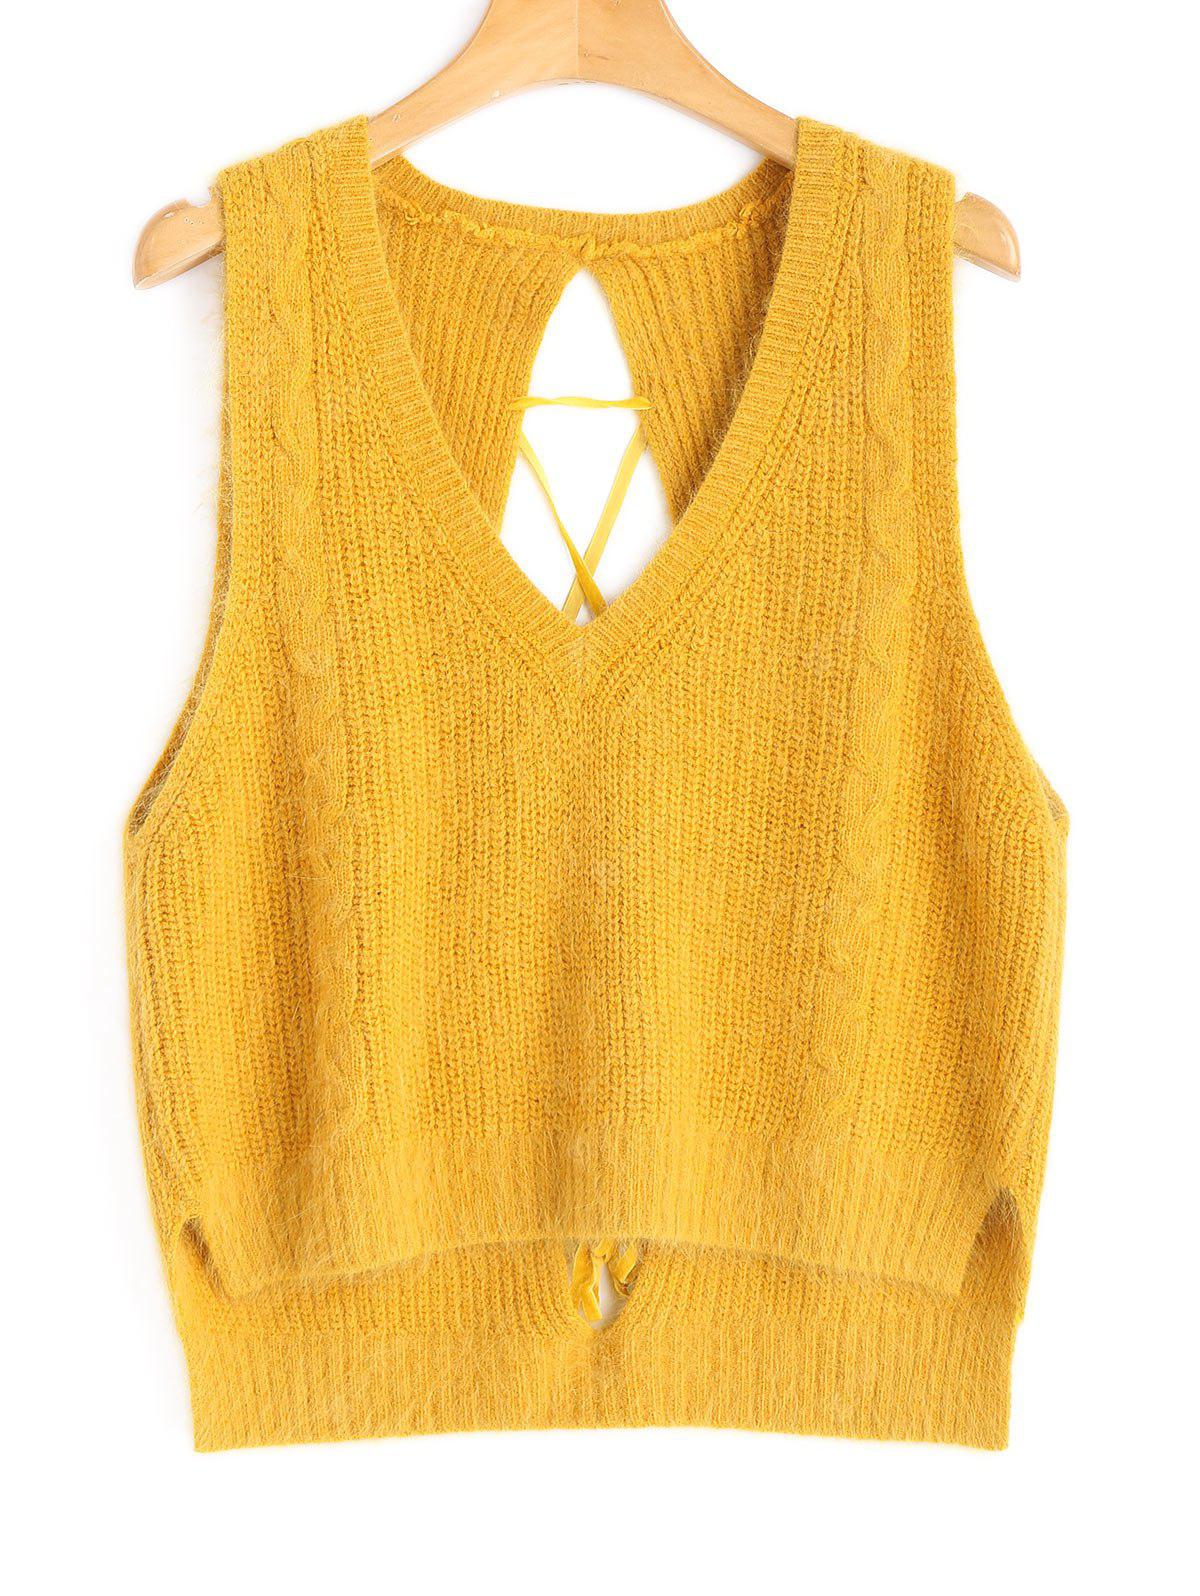 Lace Up Vest High Low Sweater